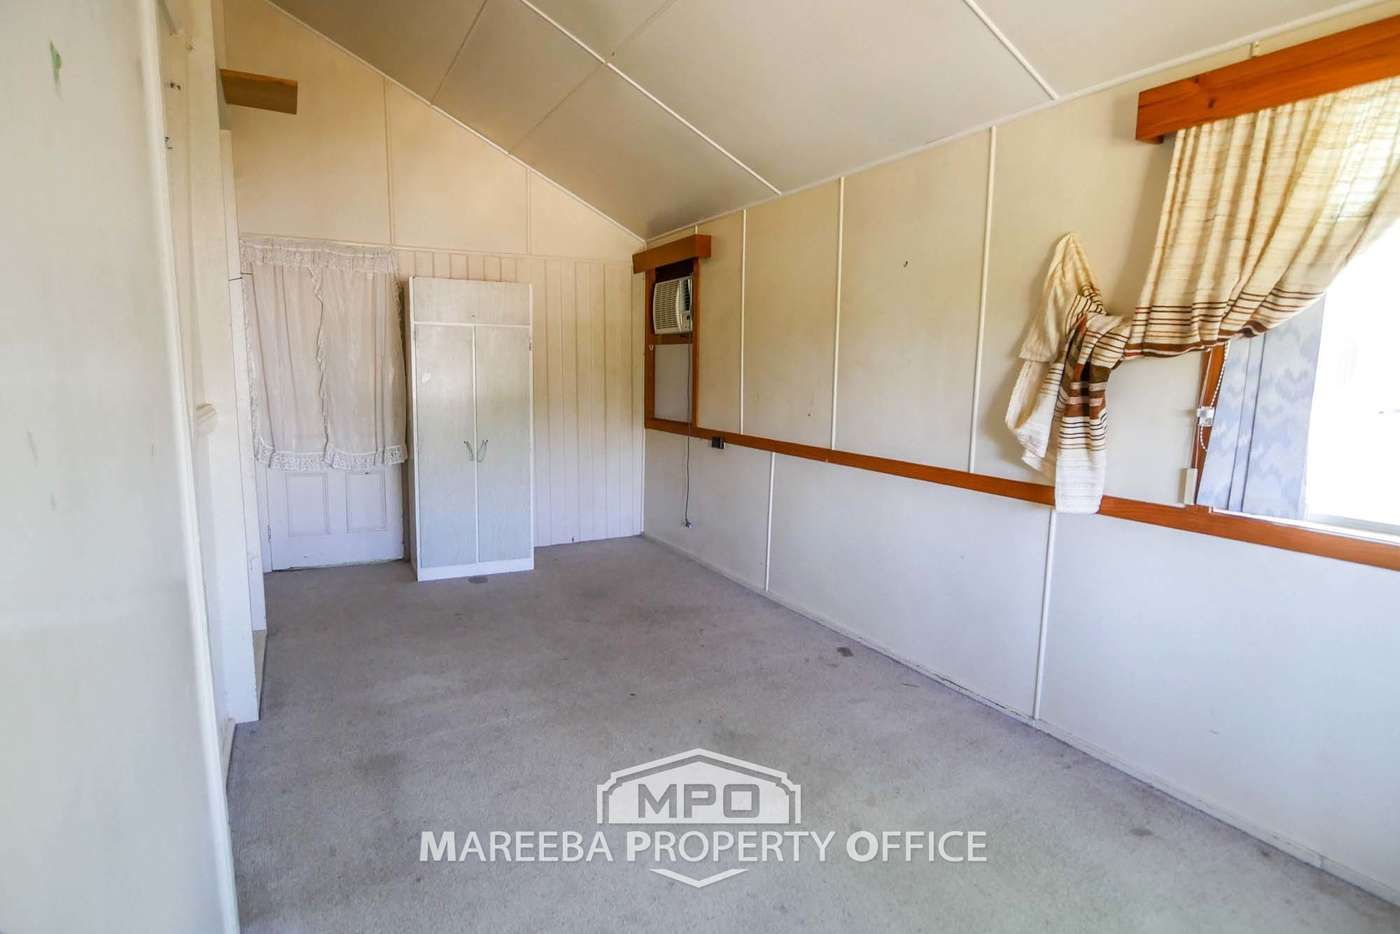 Seventh view of Homely house listing, 4 Constance Street, Mareeba QLD 4880